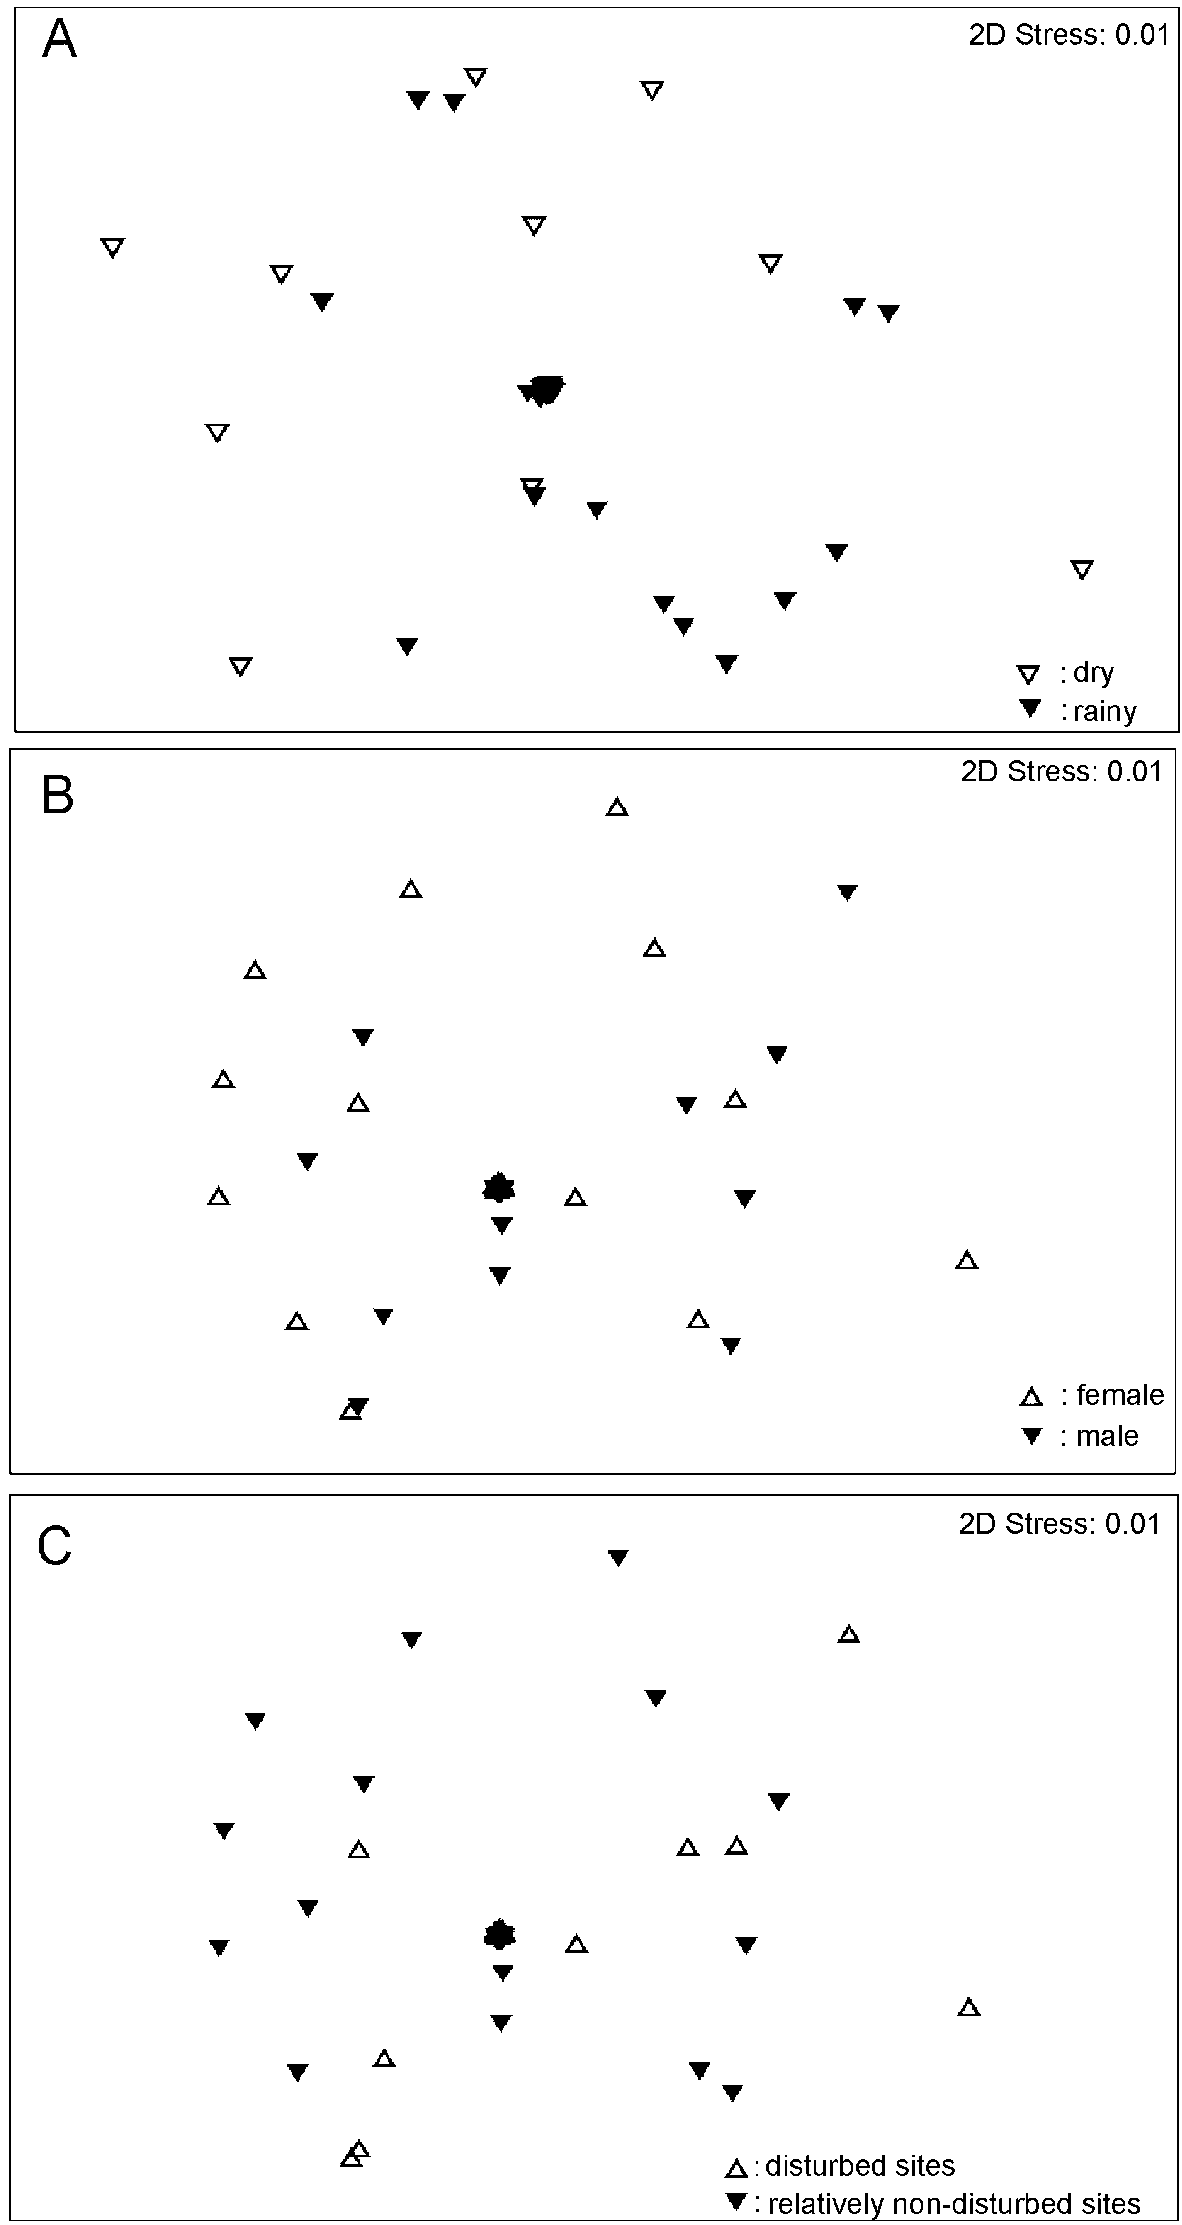 The diet of a forest-dependent frog species, Odorrana